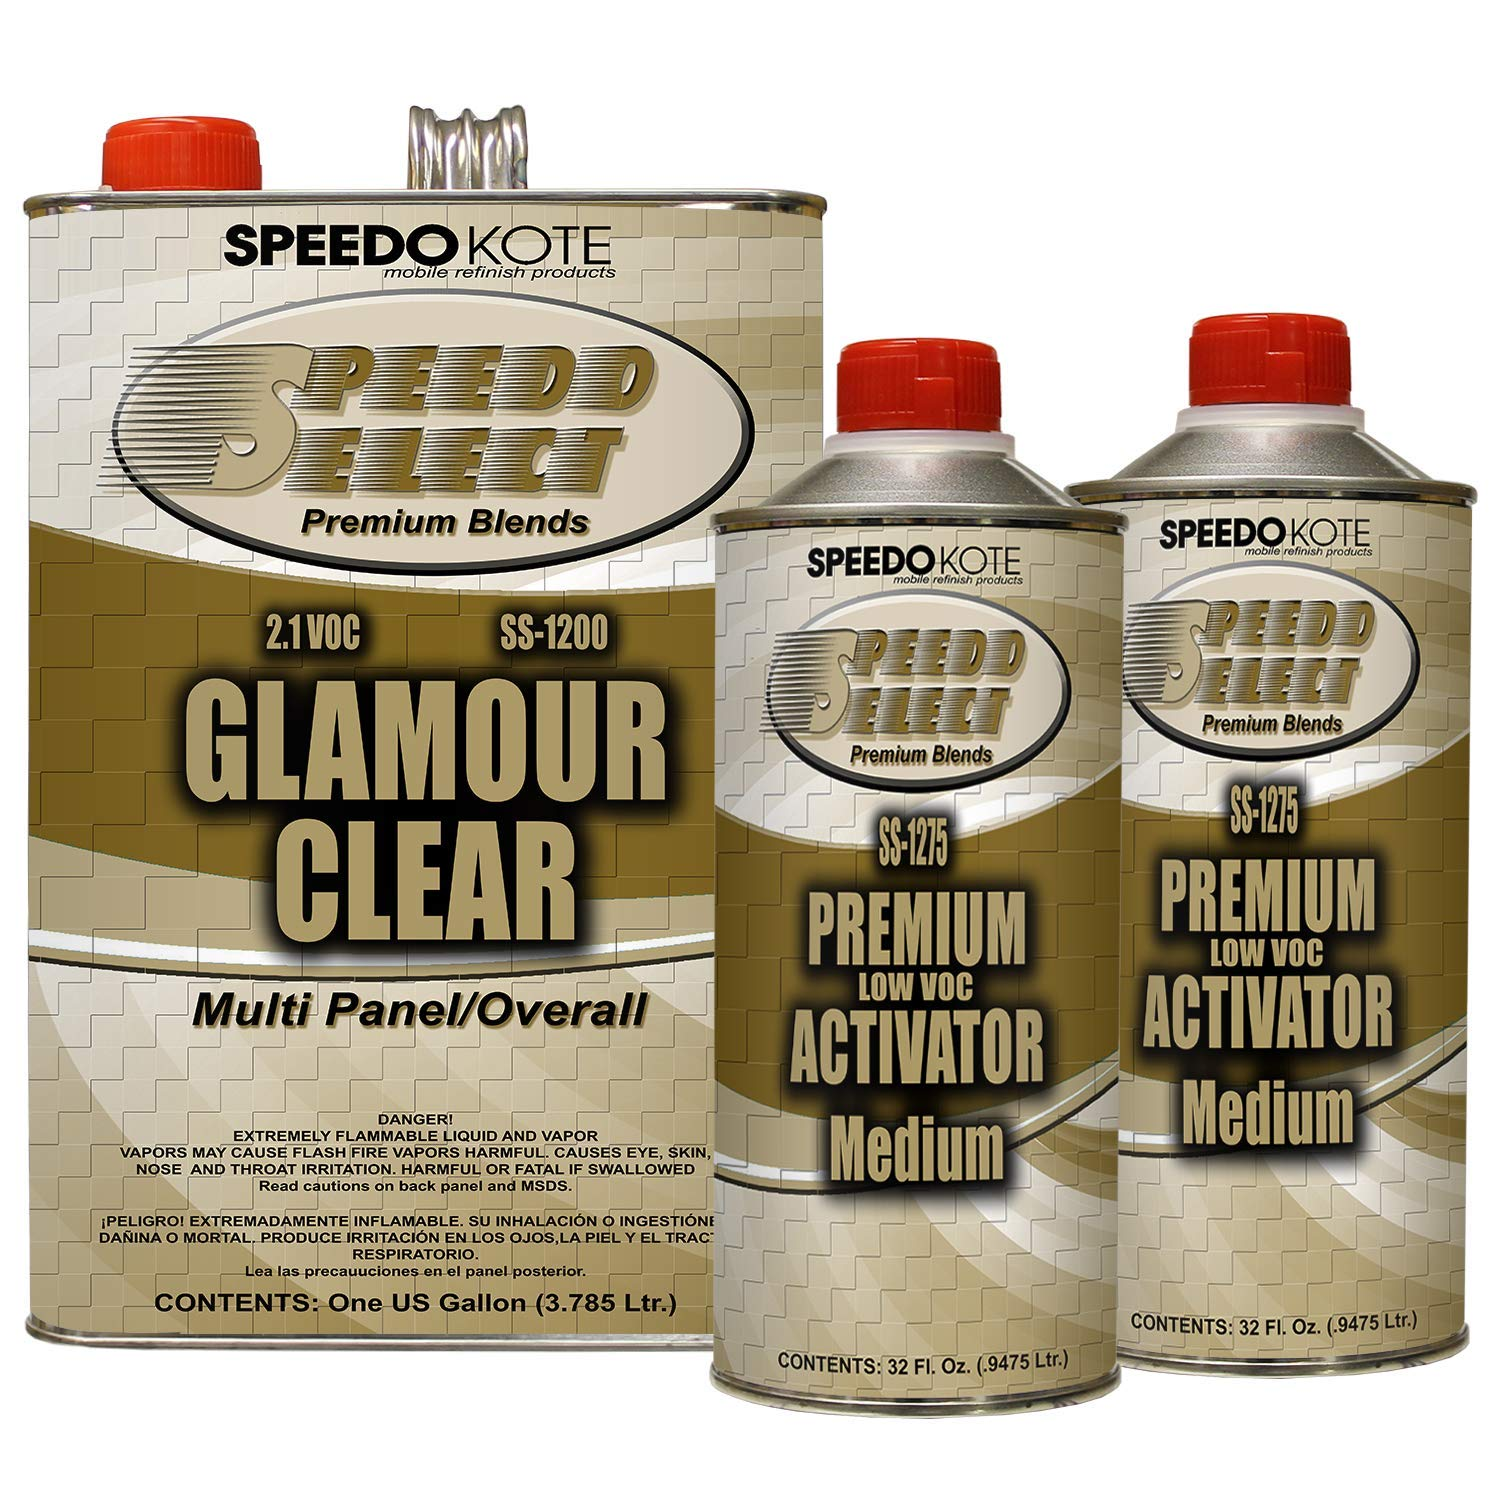 Speedokote SS-1200/75 - Ultra High Gloss with Superior DOI 2.1 voc Clear Coat, 2:1 mix 6 quarts Medium speed clearcoat Kit